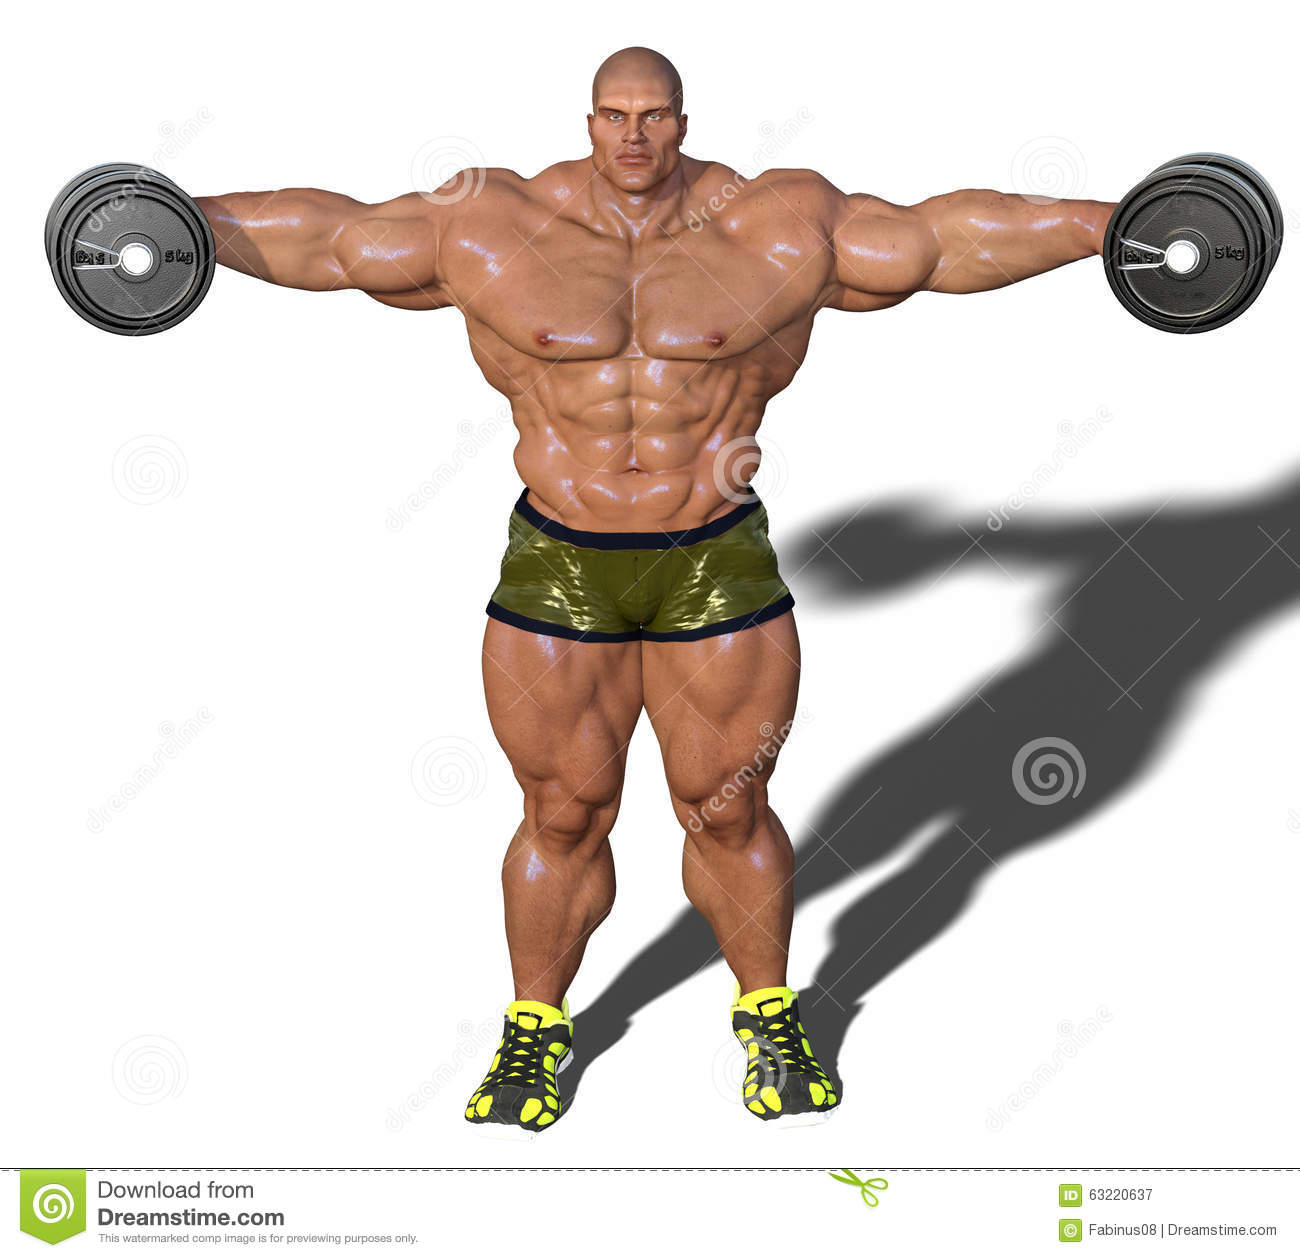 Royalty Free Stock Photos: Lateral raise. Image: 52591048